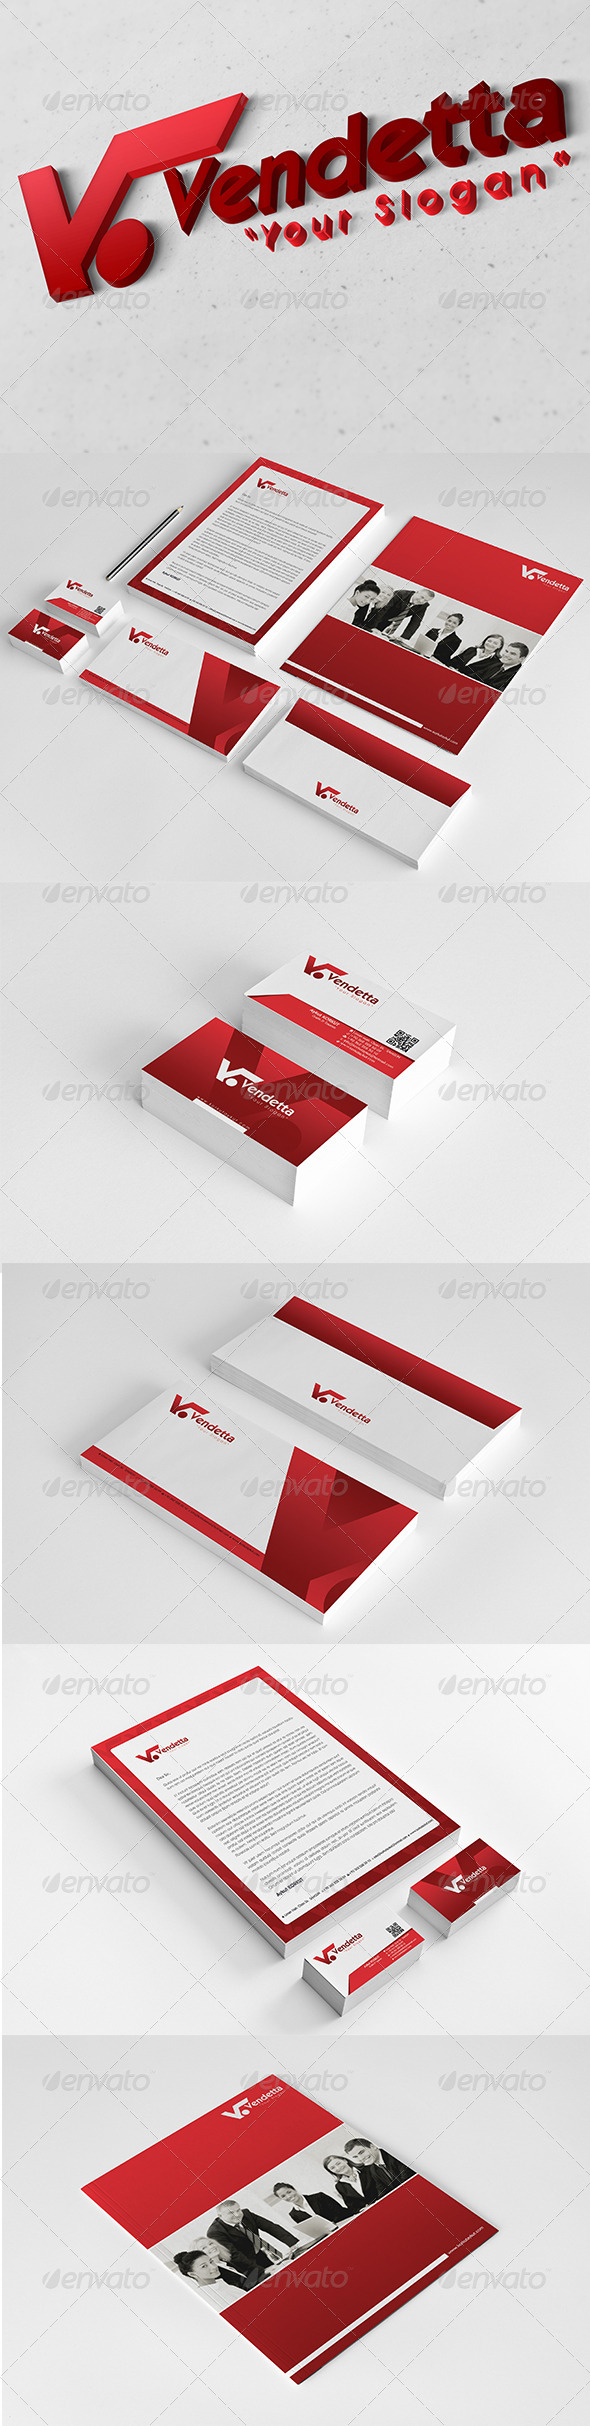 Vendetta Corporate Identity Package V2 - Stationery Print Templates